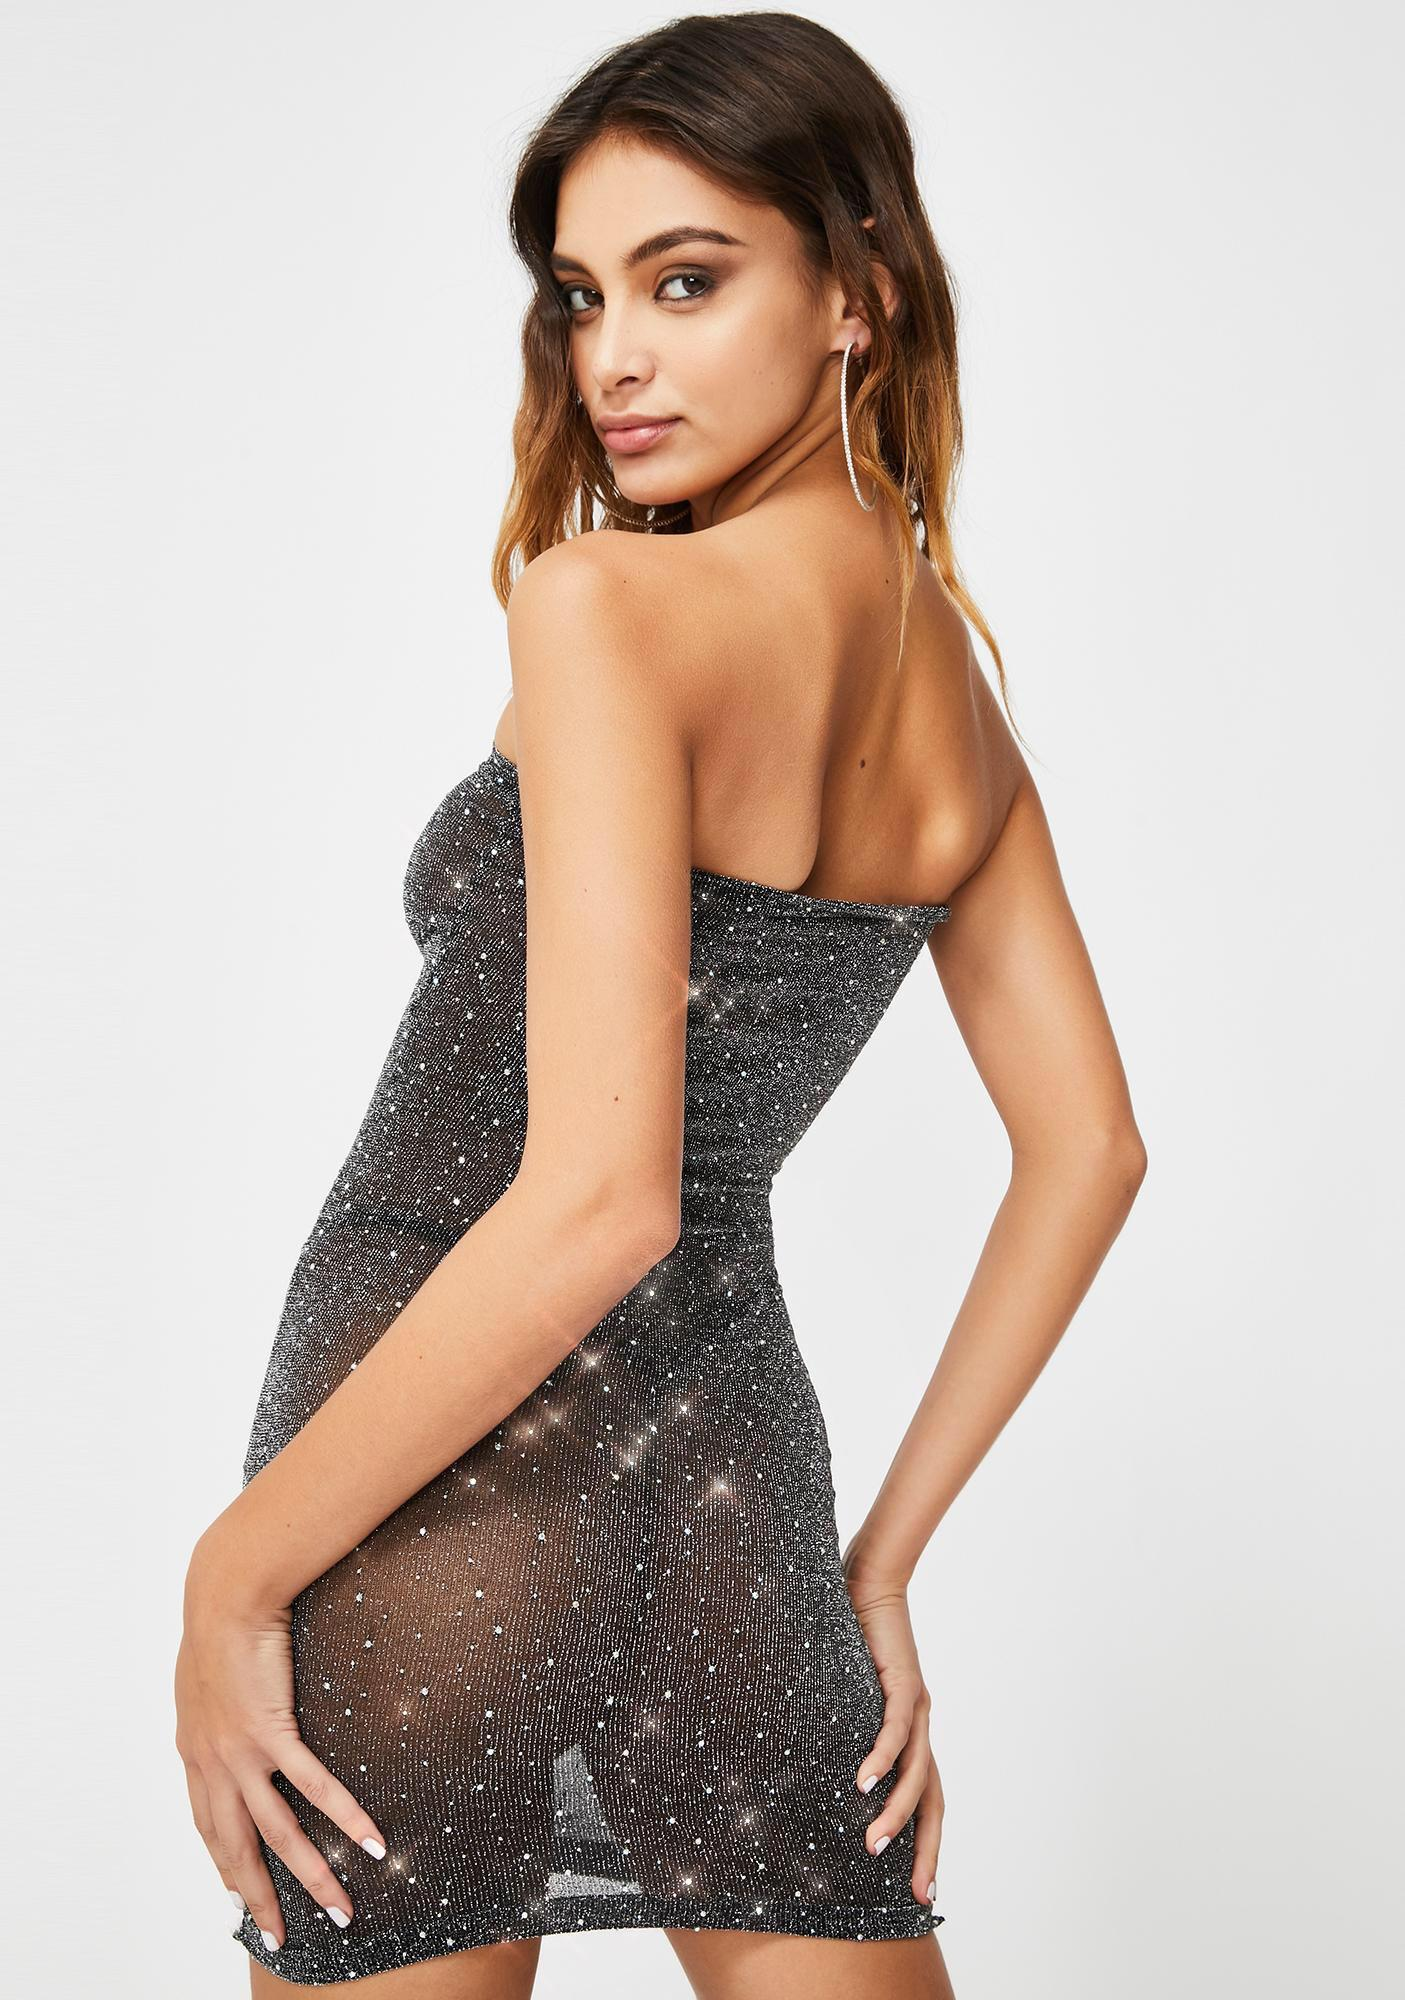 Decked In Ice Sheer Dress